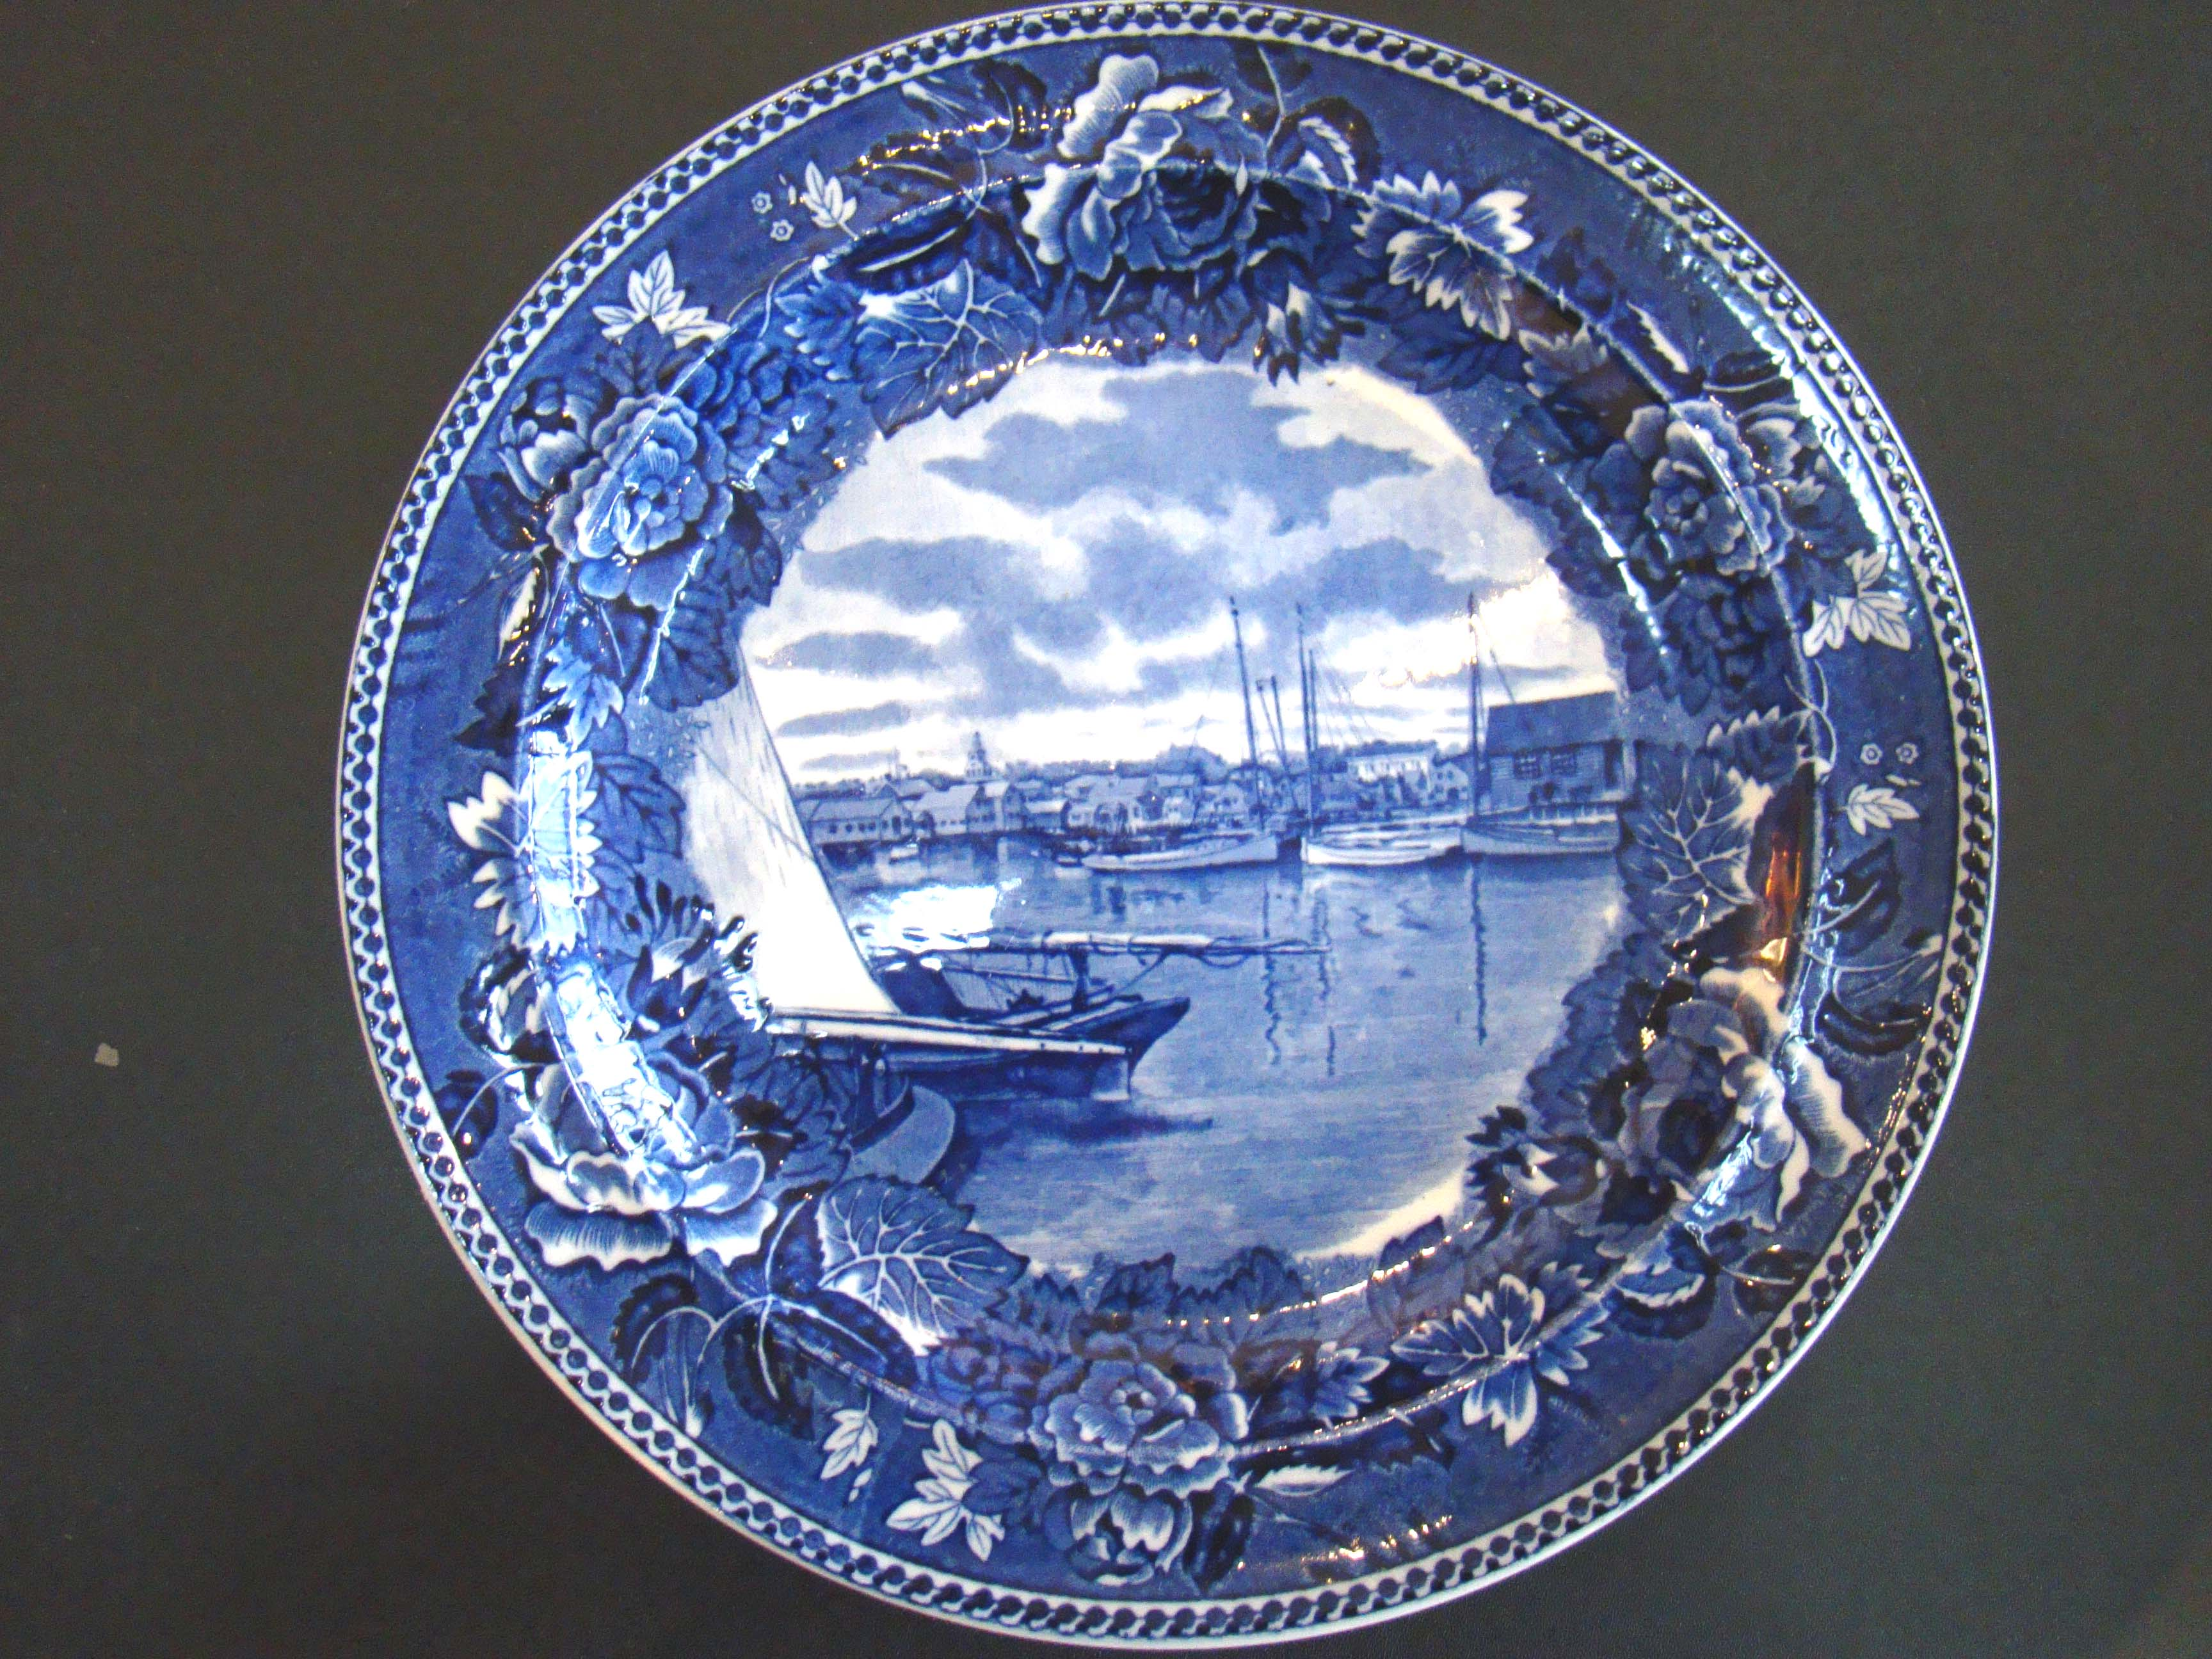 click to view detailed description of A fine souvenir 'Nantucket Harbor' plate made by Wedgwood in 1900.